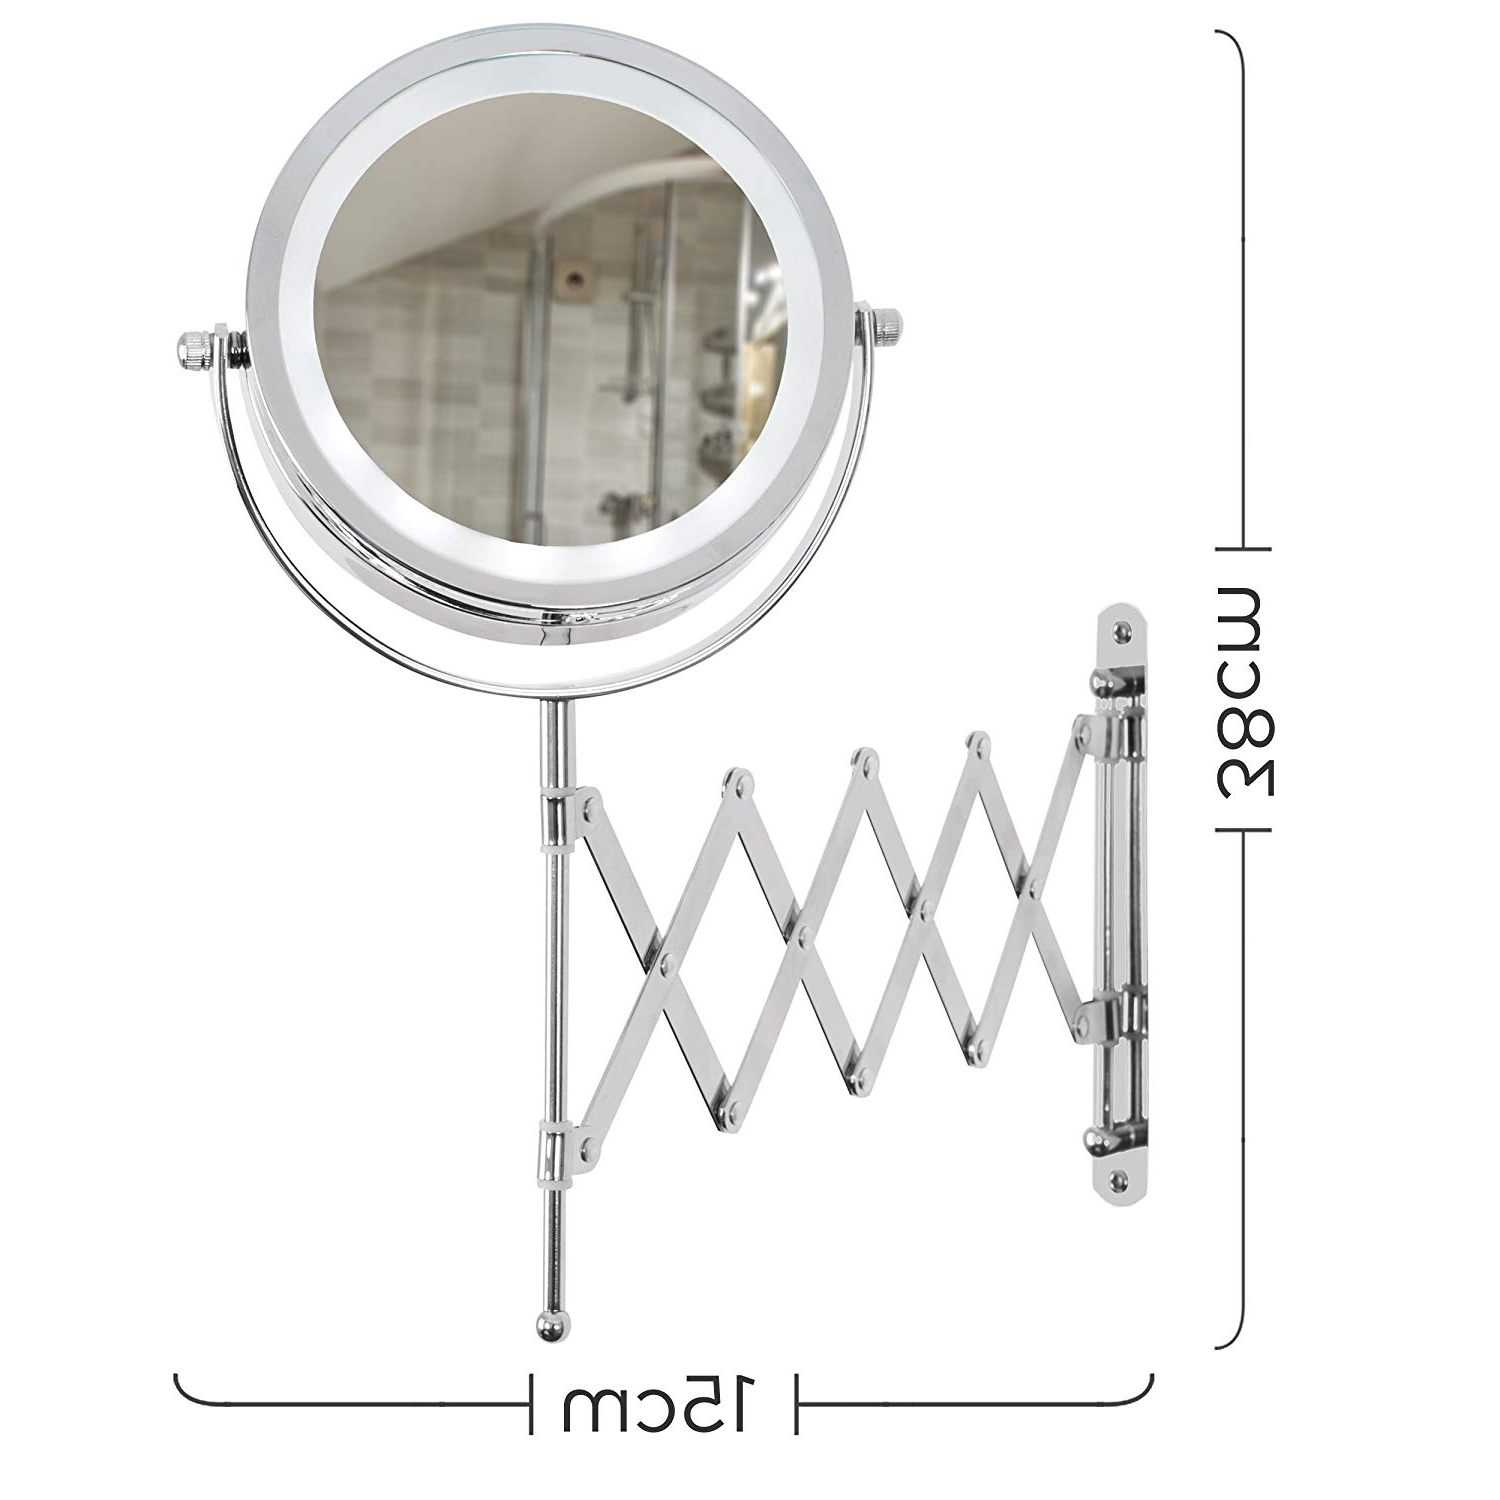 Adjustable And Extendable Round Chrome Battery Operated Magnifying Bathroom  Led Illuminated Make Up Cosmetic Shaving Vanity Wall Mounted Mirror Light Inside Current Extendable Wall Mirrors (Gallery 4 of 20)